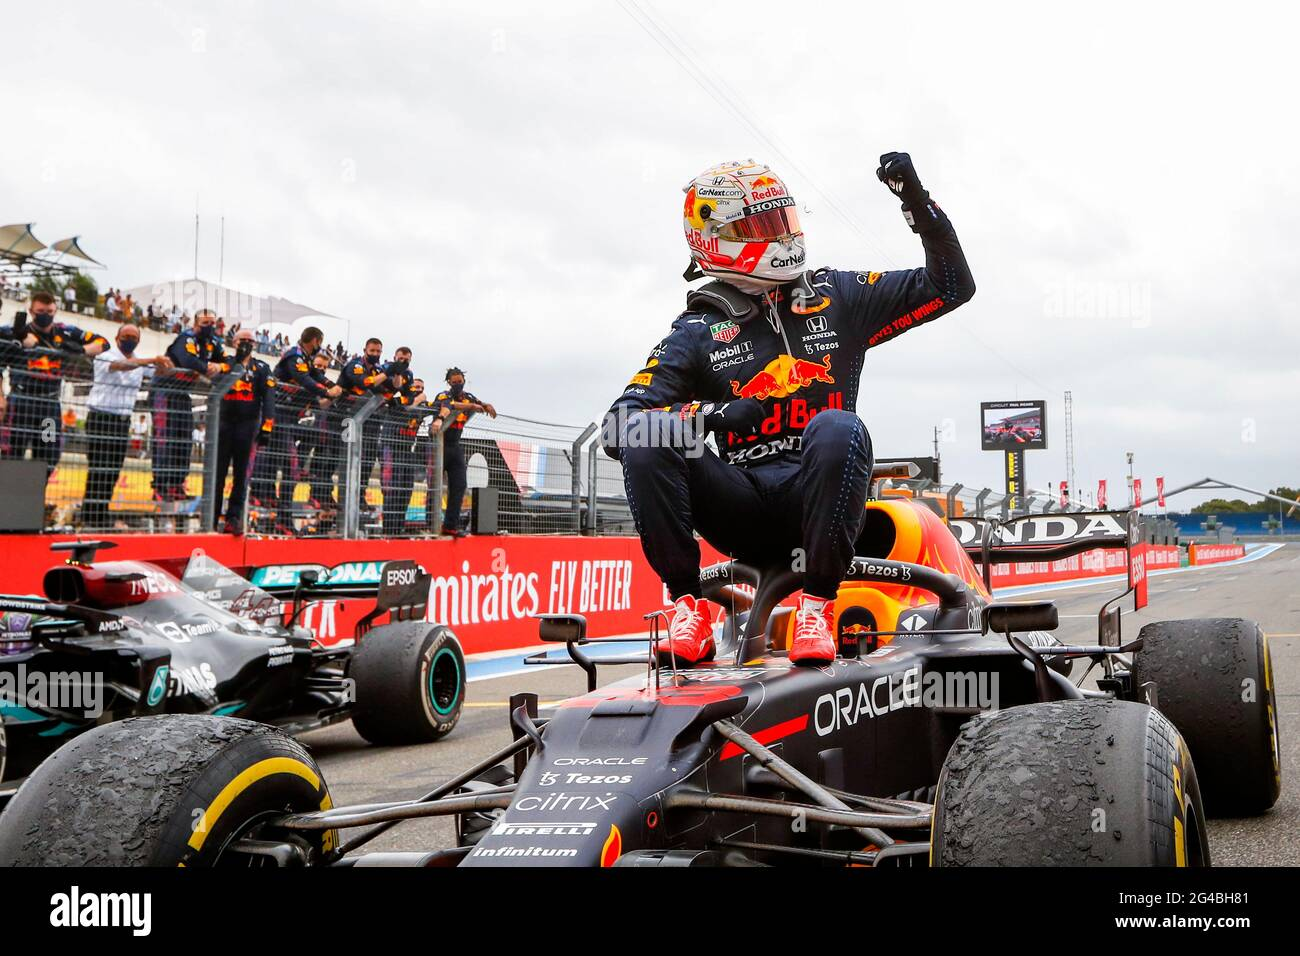 Le Castellet, France. 20th June, 2021. VERSTAPPEN Max (ned), Red Bull Racing Honda RB16B, celebrates his win during the Formula 1 Emirates Grand Prix de, France., . FIA Formula One World Championship from June 18 to 20, 2021 on the Circuit Paul Ricard, in Le Castellet, France - Photo Antonin Vincent/DPPI Credit: DPPI Media/Alamy Live News Stock Photo